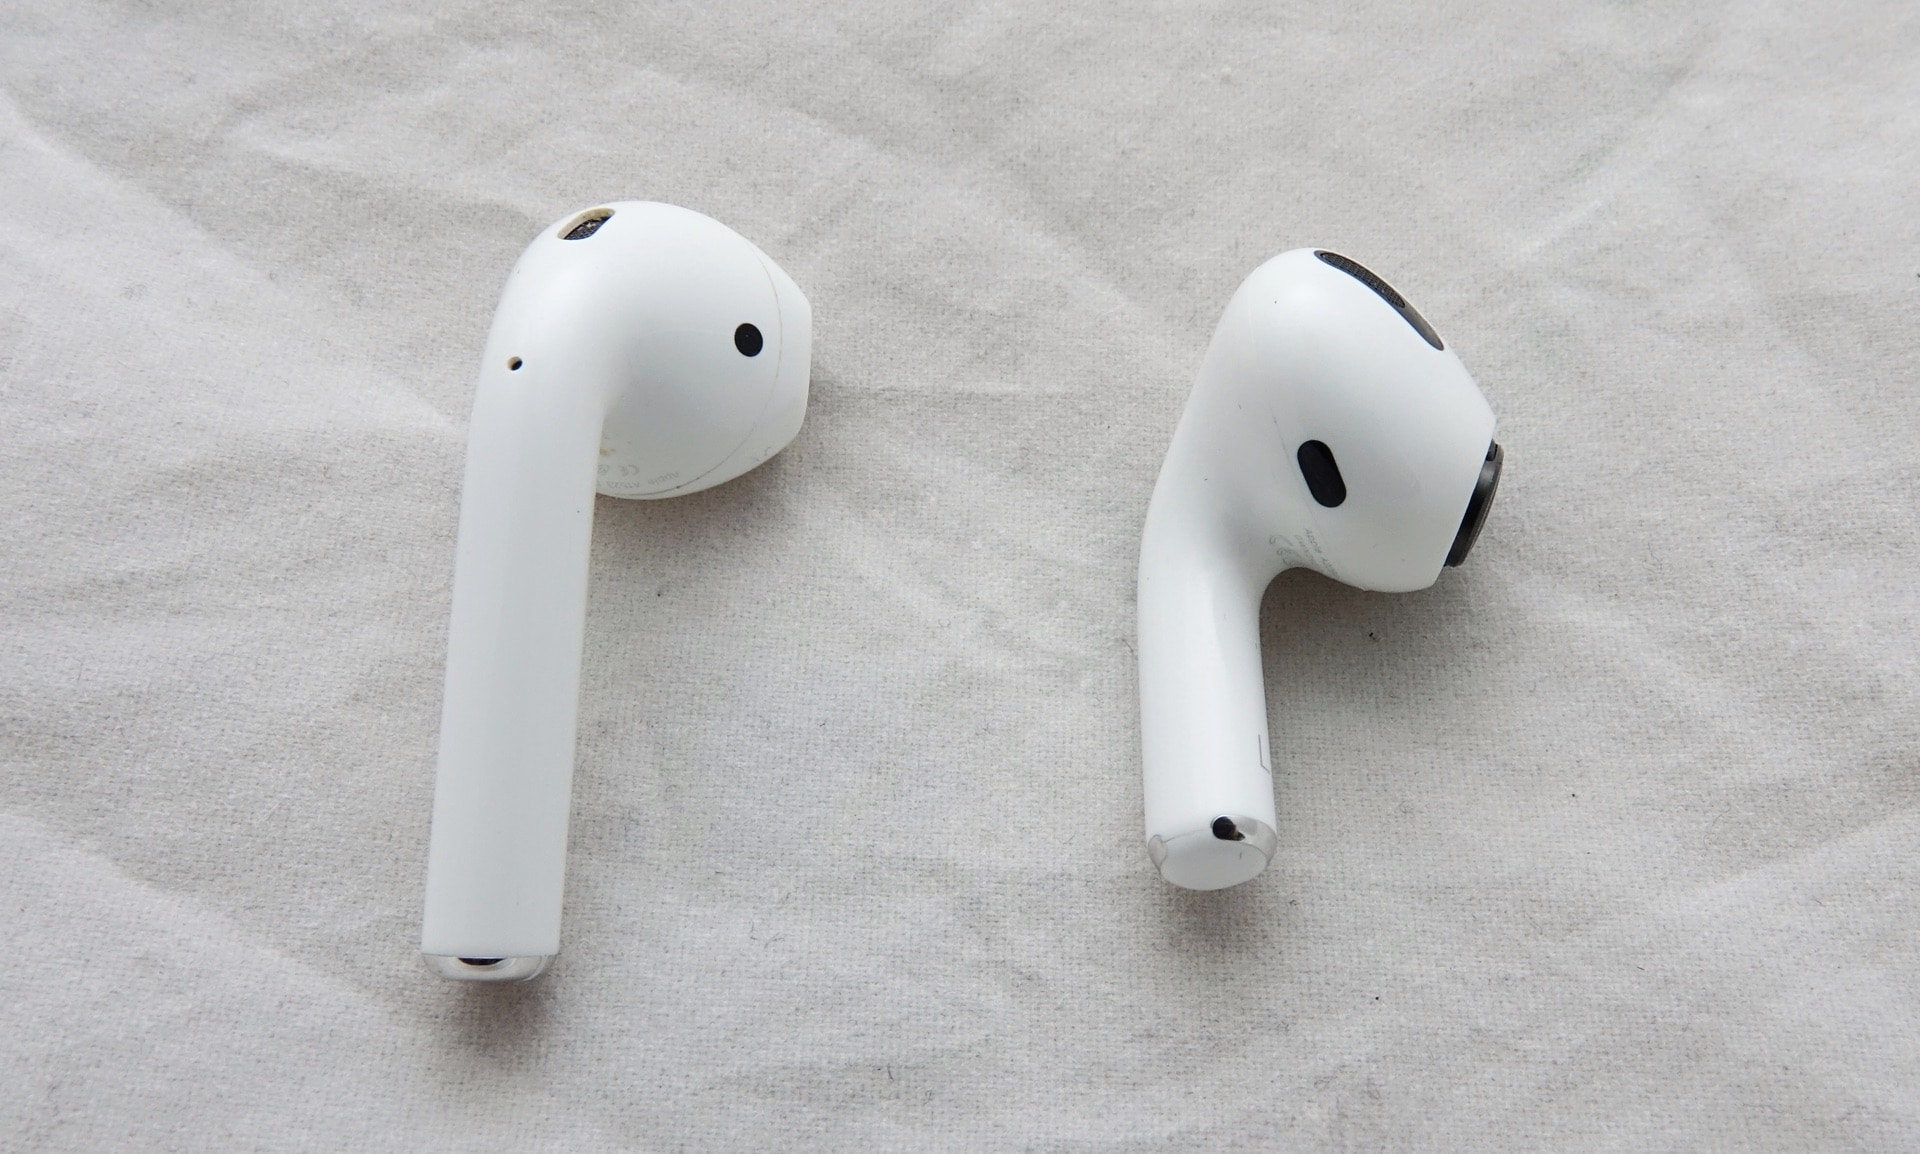 Apple AirPods vs Apple AirPods Pro